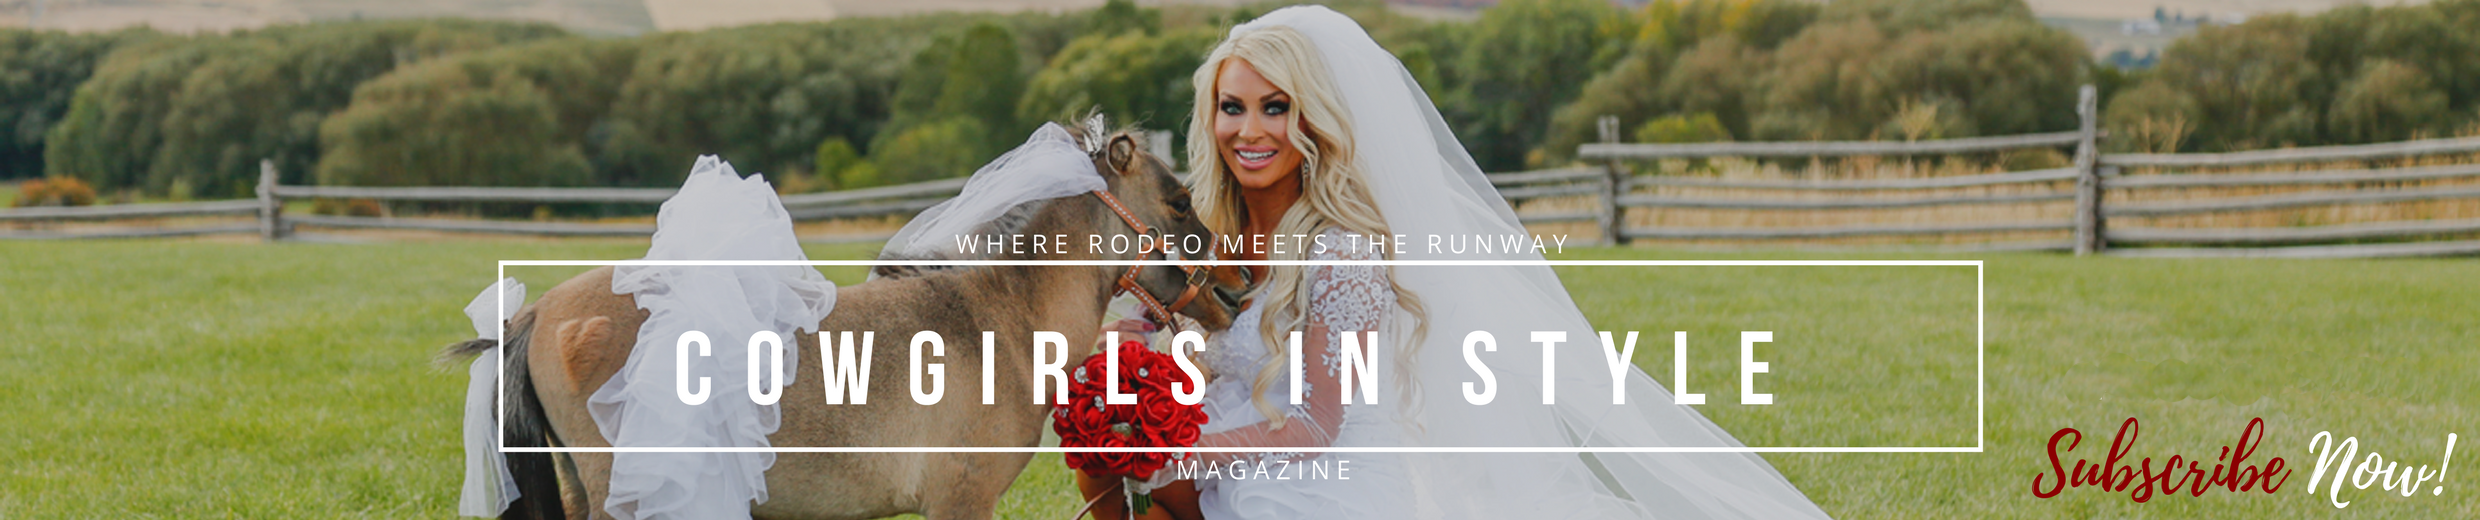 Wedding Designs C.R.BOGGS in this issue! - Cowgirls In Style Magazine